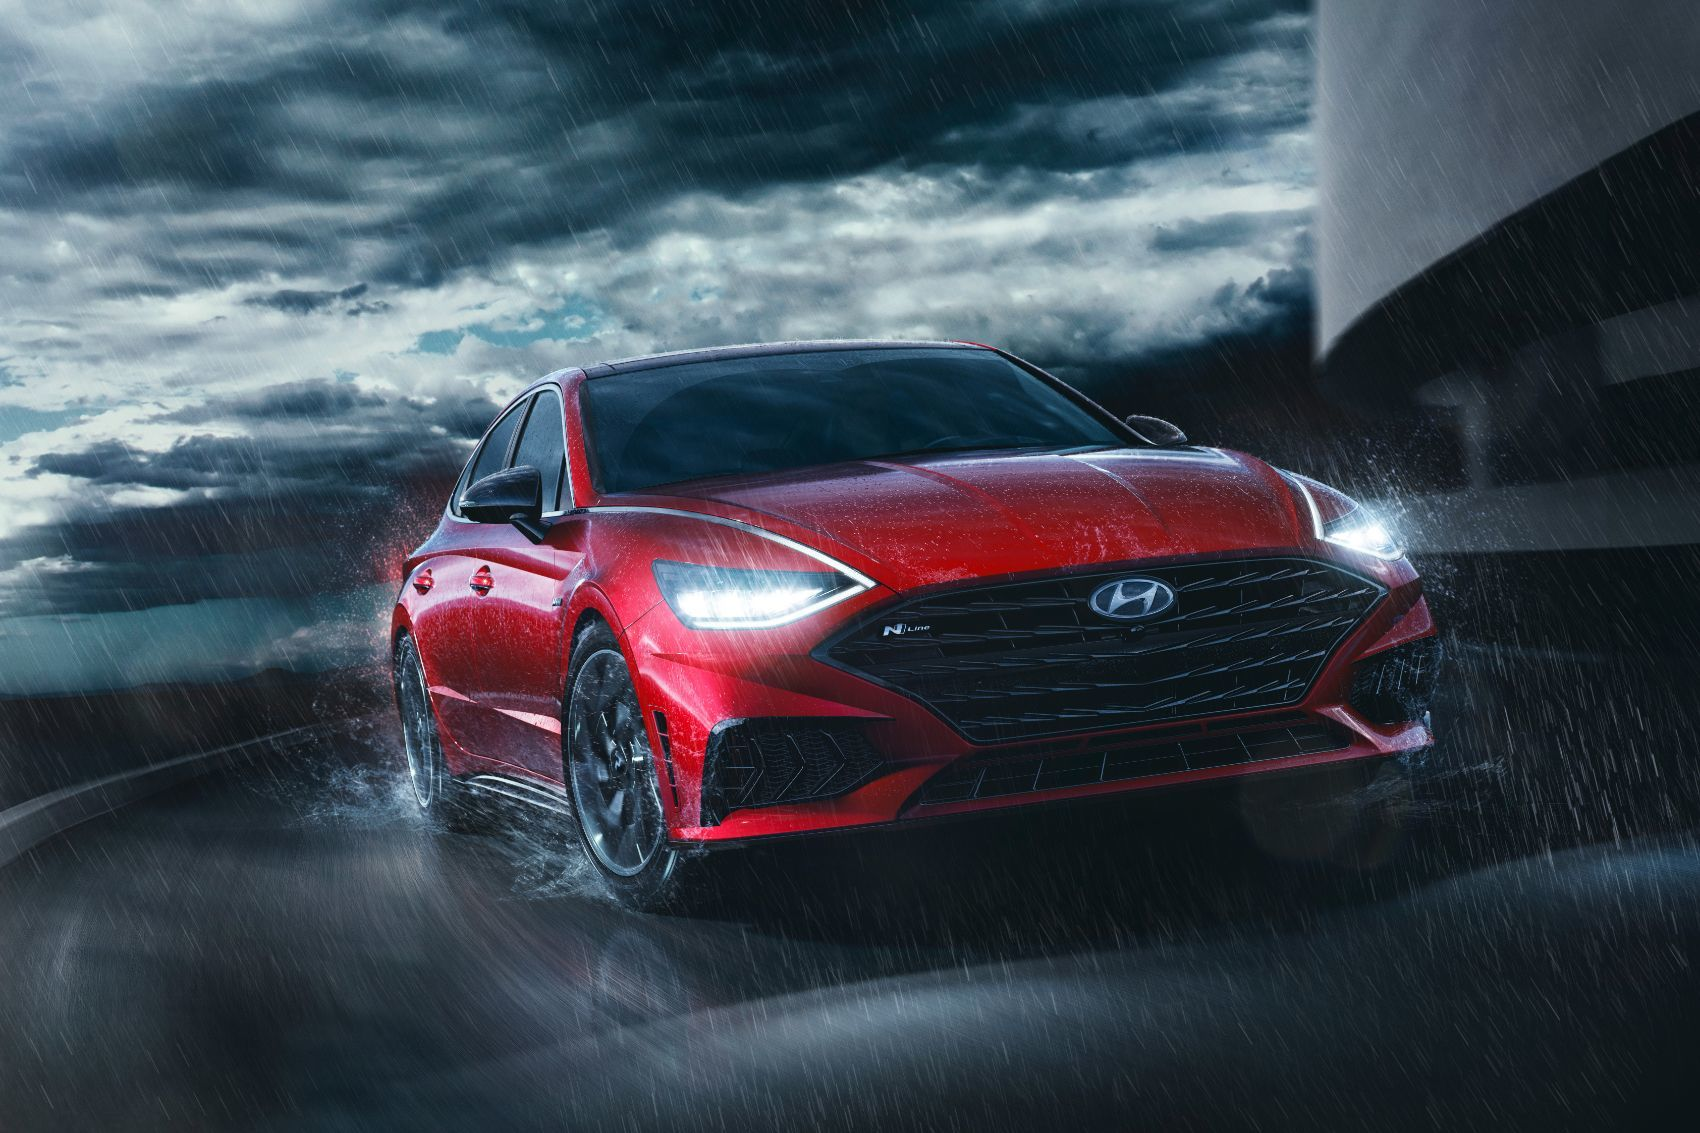 2021 Hyundai Sonata N Line Overview: Performance, Pricing & Standard Features